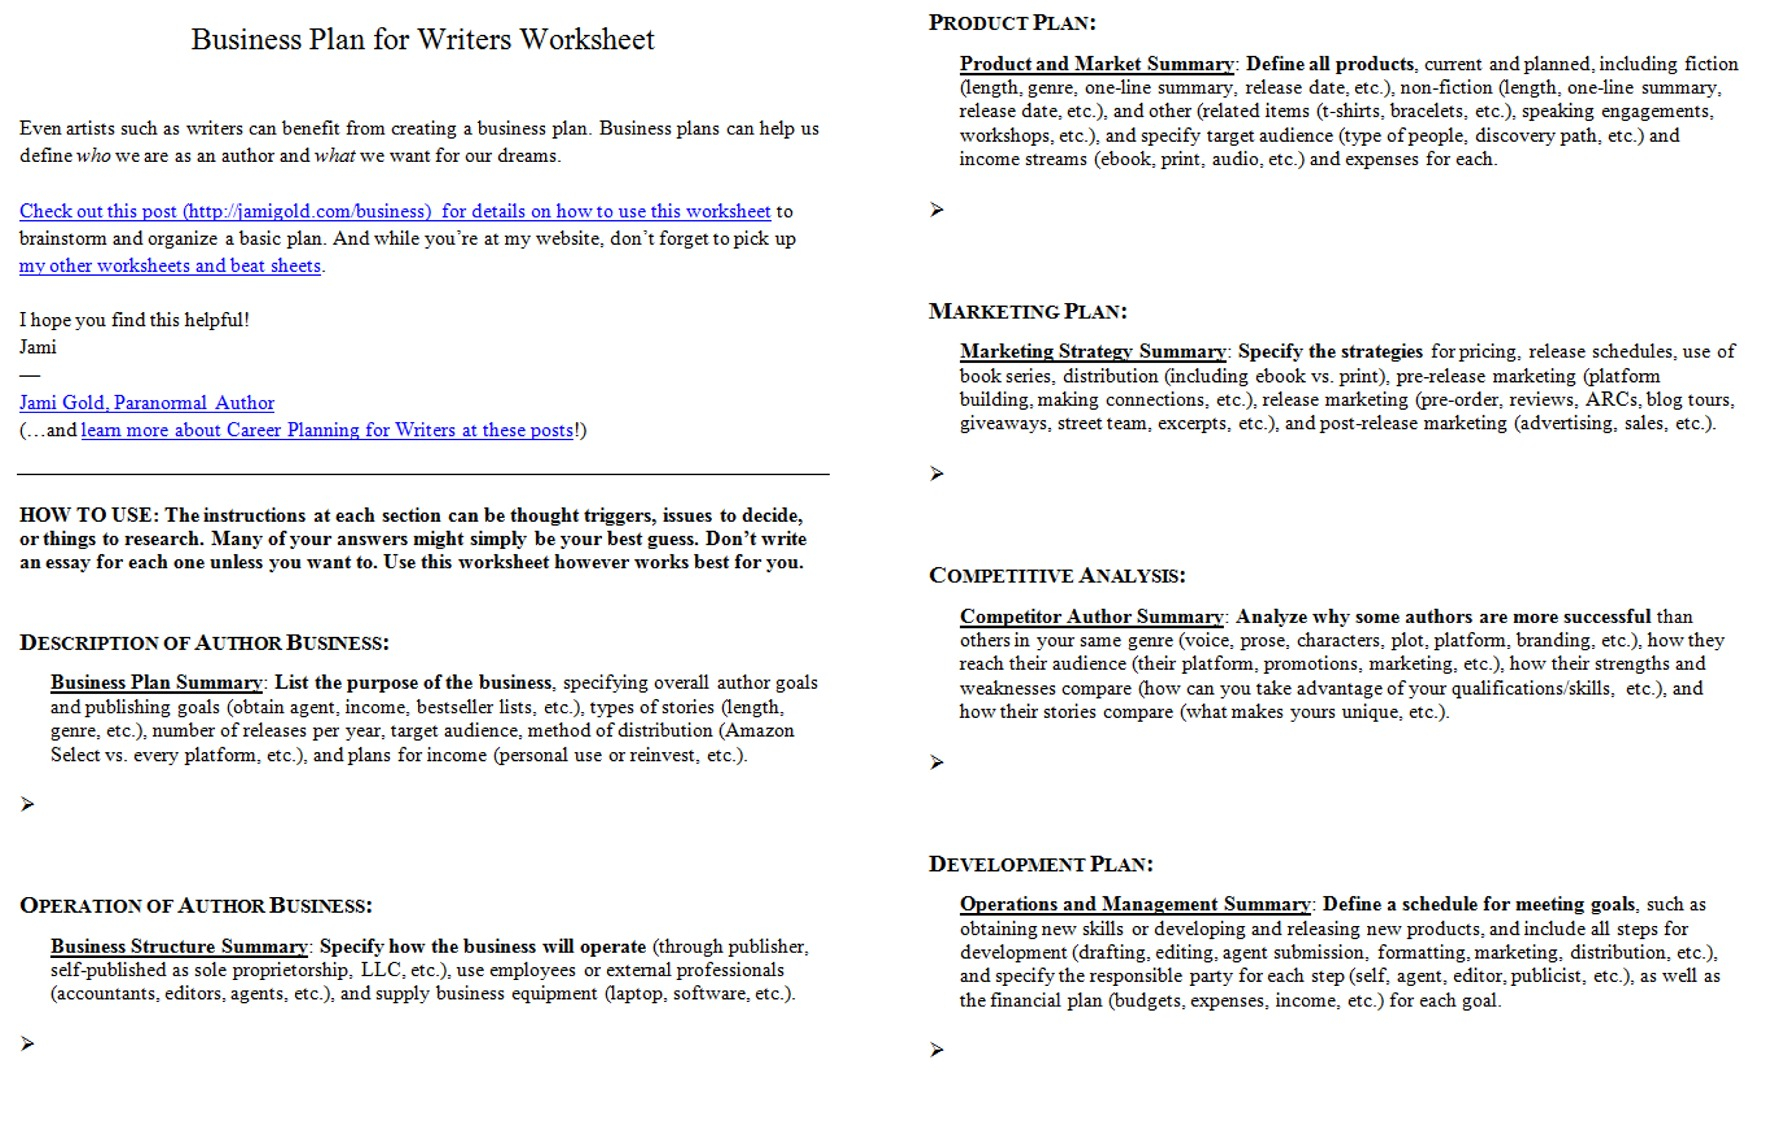 Aldiablosus  Mesmerizing Worksheets For Writers  Jami Gold Paranormal Author With Interesting Screen Shot Of Both Pages Of The Business Plan For Writers Worksheet With Extraordinary Insanity Workout Worksheet Also Possessive Noun Worksheets For Th Grade In Addition Families Of Instruments Worksheets And My School Worksheet As Well As Making Change Worksheets For Nd Grade Additionally Multiplication Table Worksheet Generator From Jamigoldcom With Aldiablosus  Interesting Worksheets For Writers  Jami Gold Paranormal Author With Extraordinary Screen Shot Of Both Pages Of The Business Plan For Writers Worksheet And Mesmerizing Insanity Workout Worksheet Also Possessive Noun Worksheets For Th Grade In Addition Families Of Instruments Worksheets From Jamigoldcom